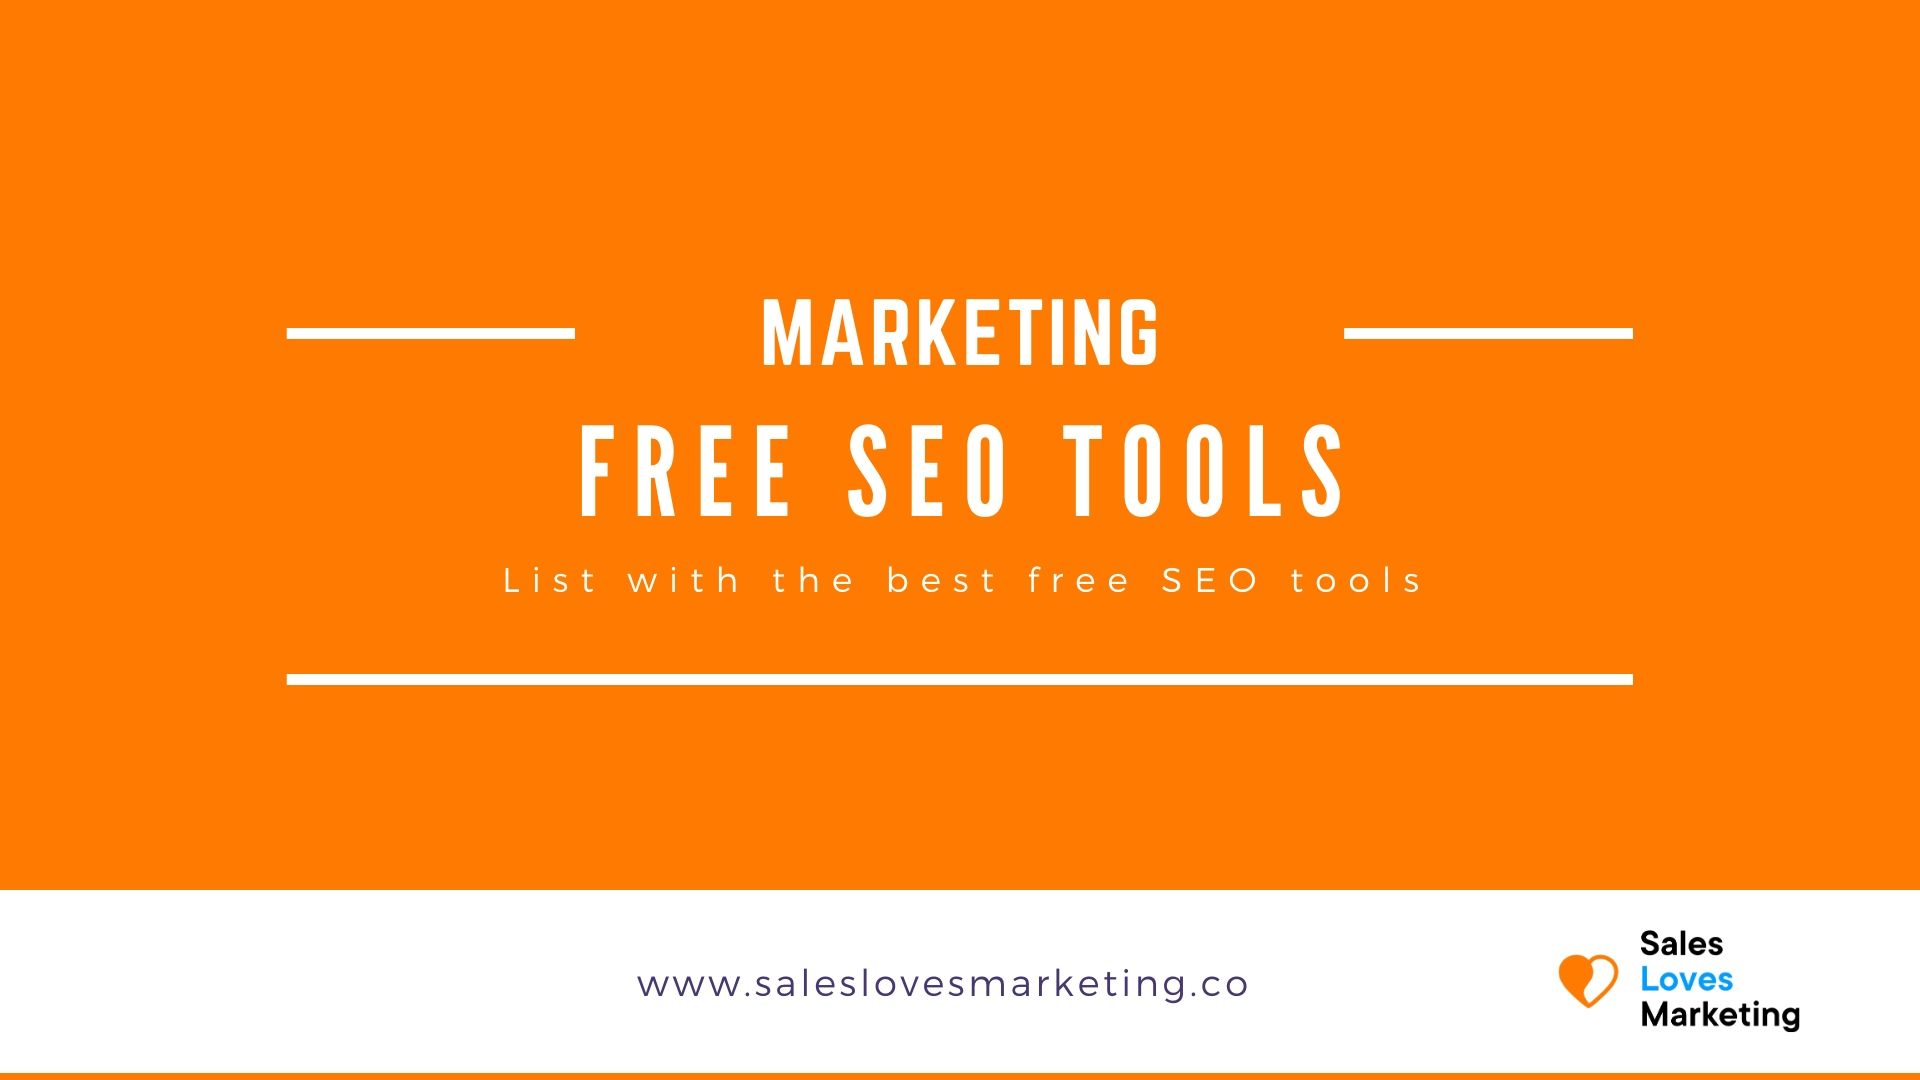 Listing with the best free SEO tools